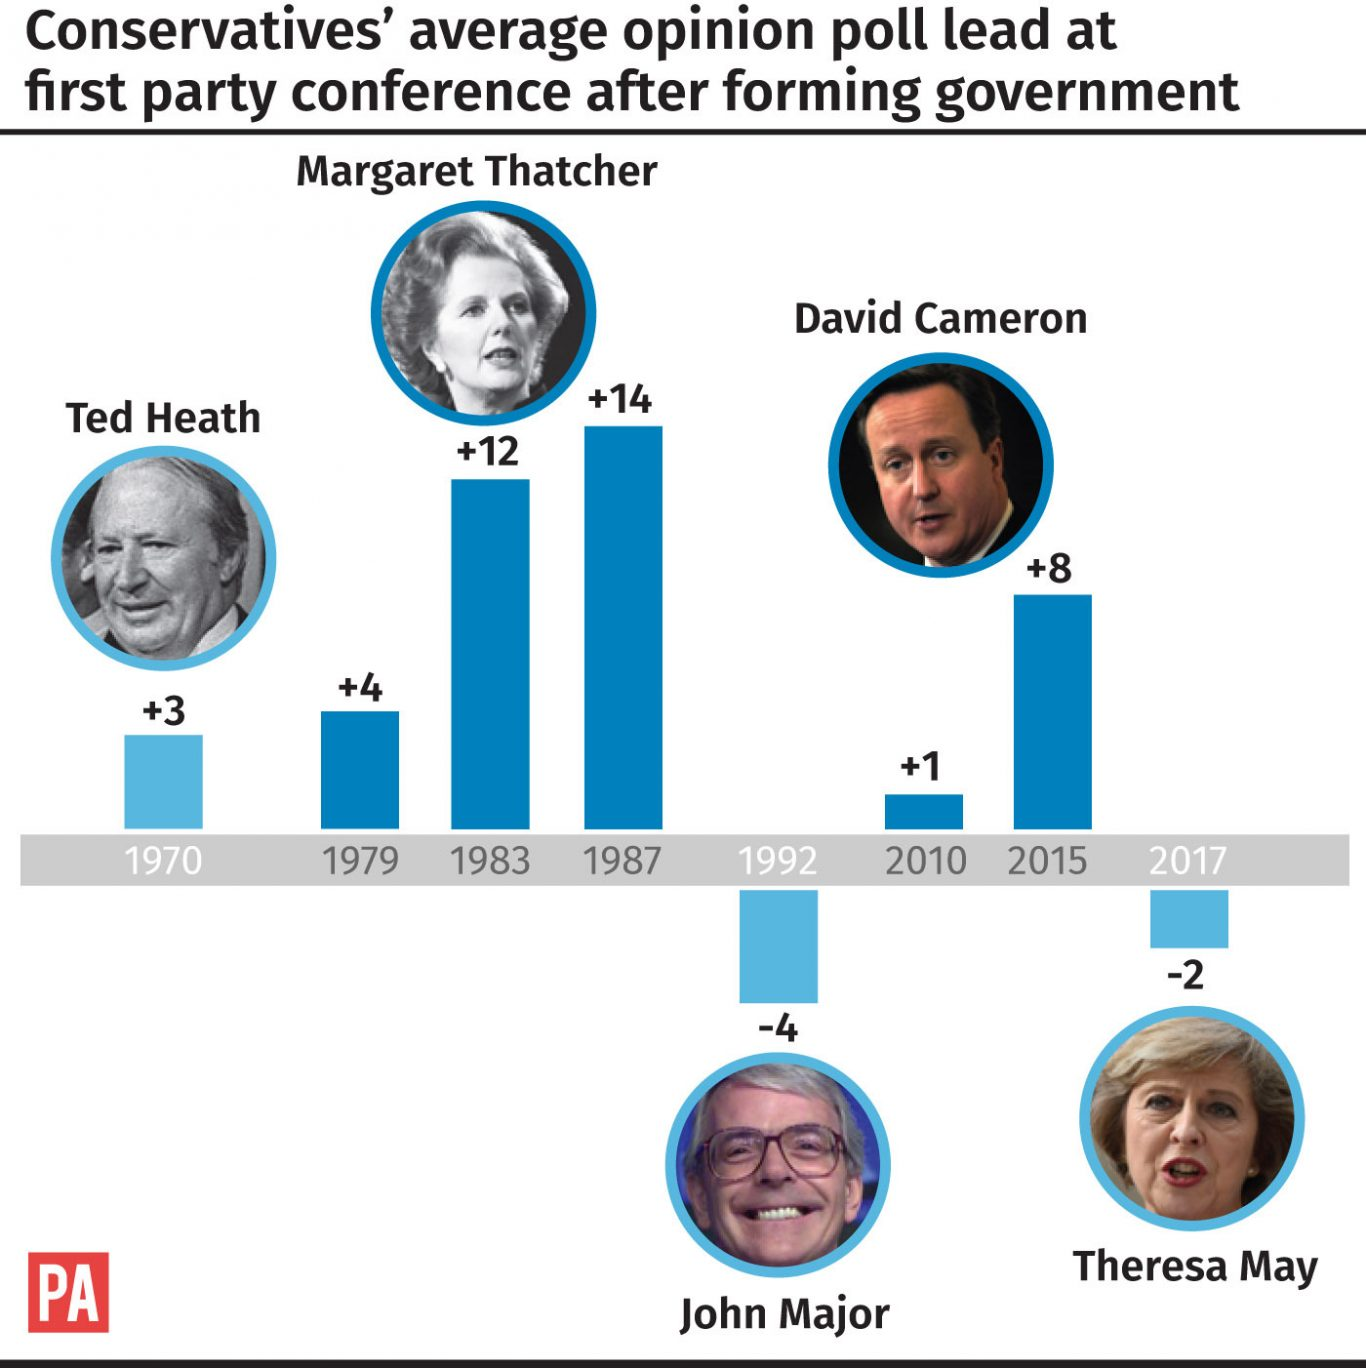 Conservatives' average opinion poll lead at first party conference after forming government